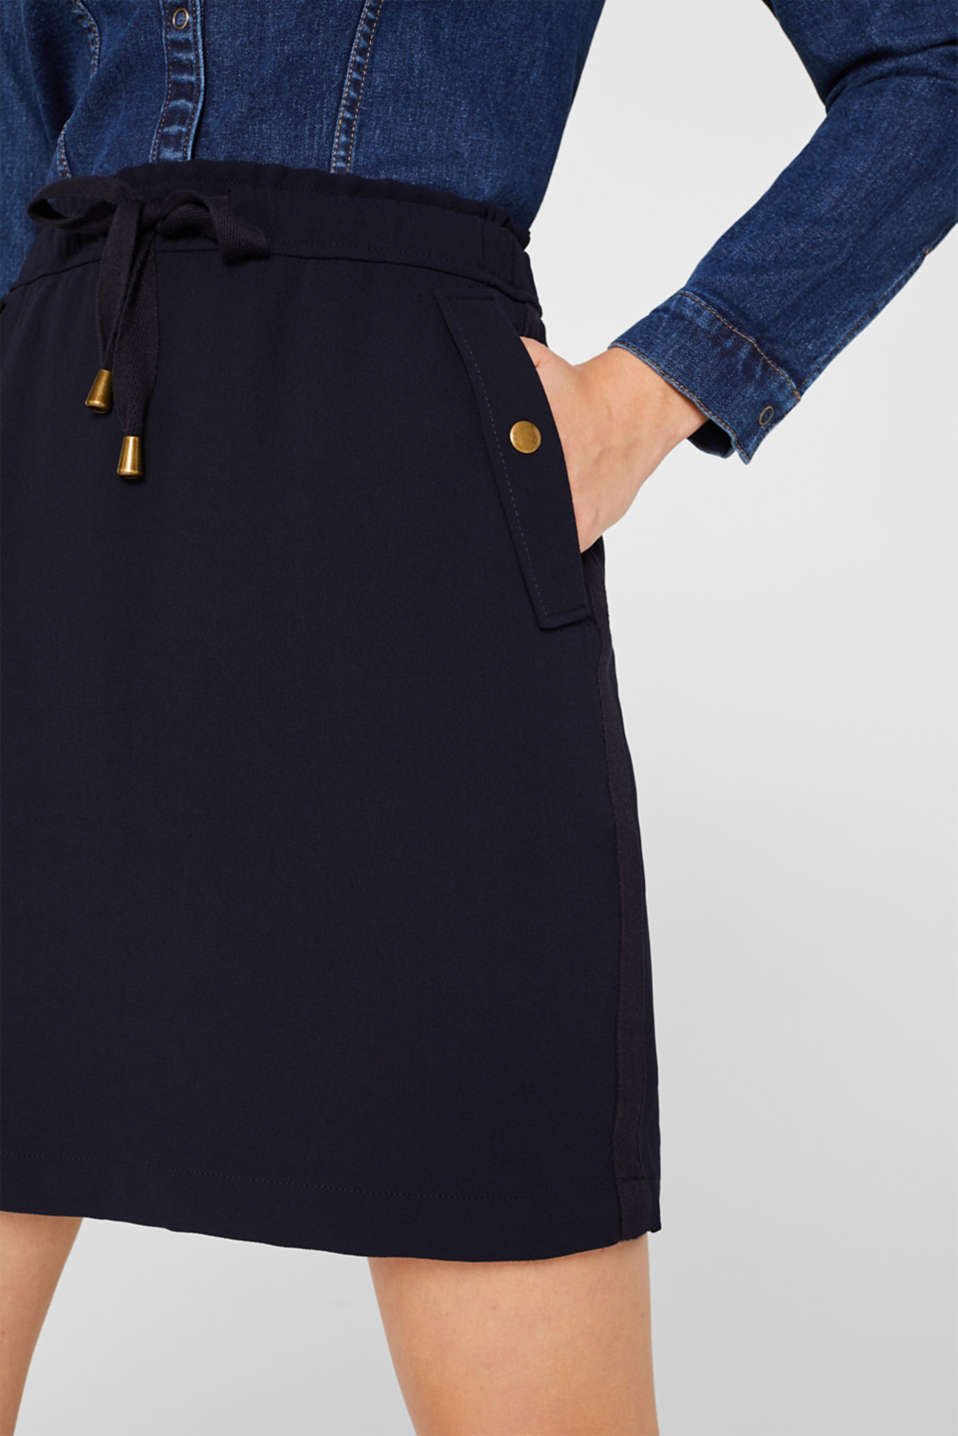 Crêpe skirt with a drawstring waistband, NAVY, detail image number 2